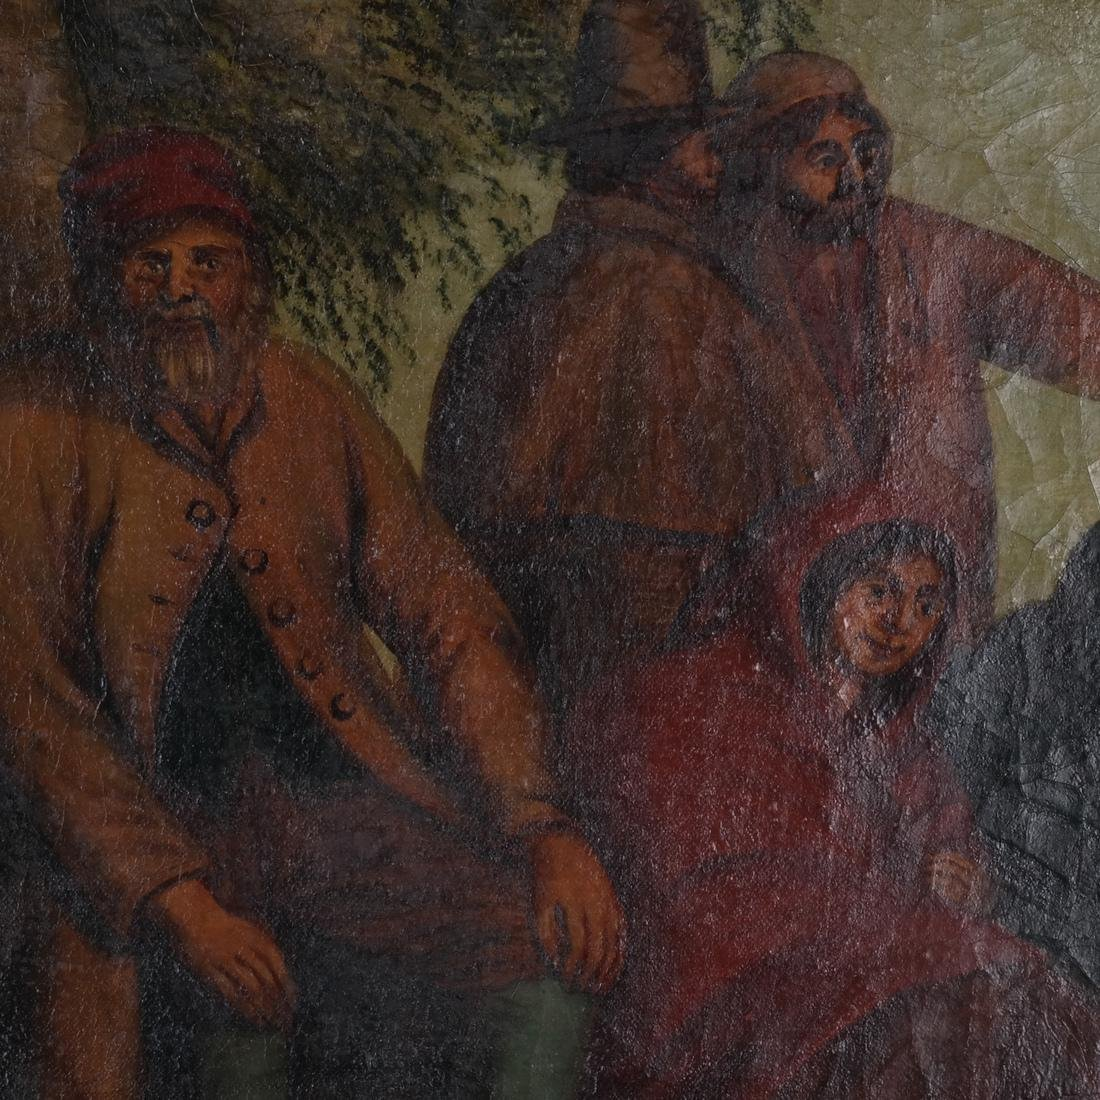 Camp Scene with Figures, Oil on Canvas - 4